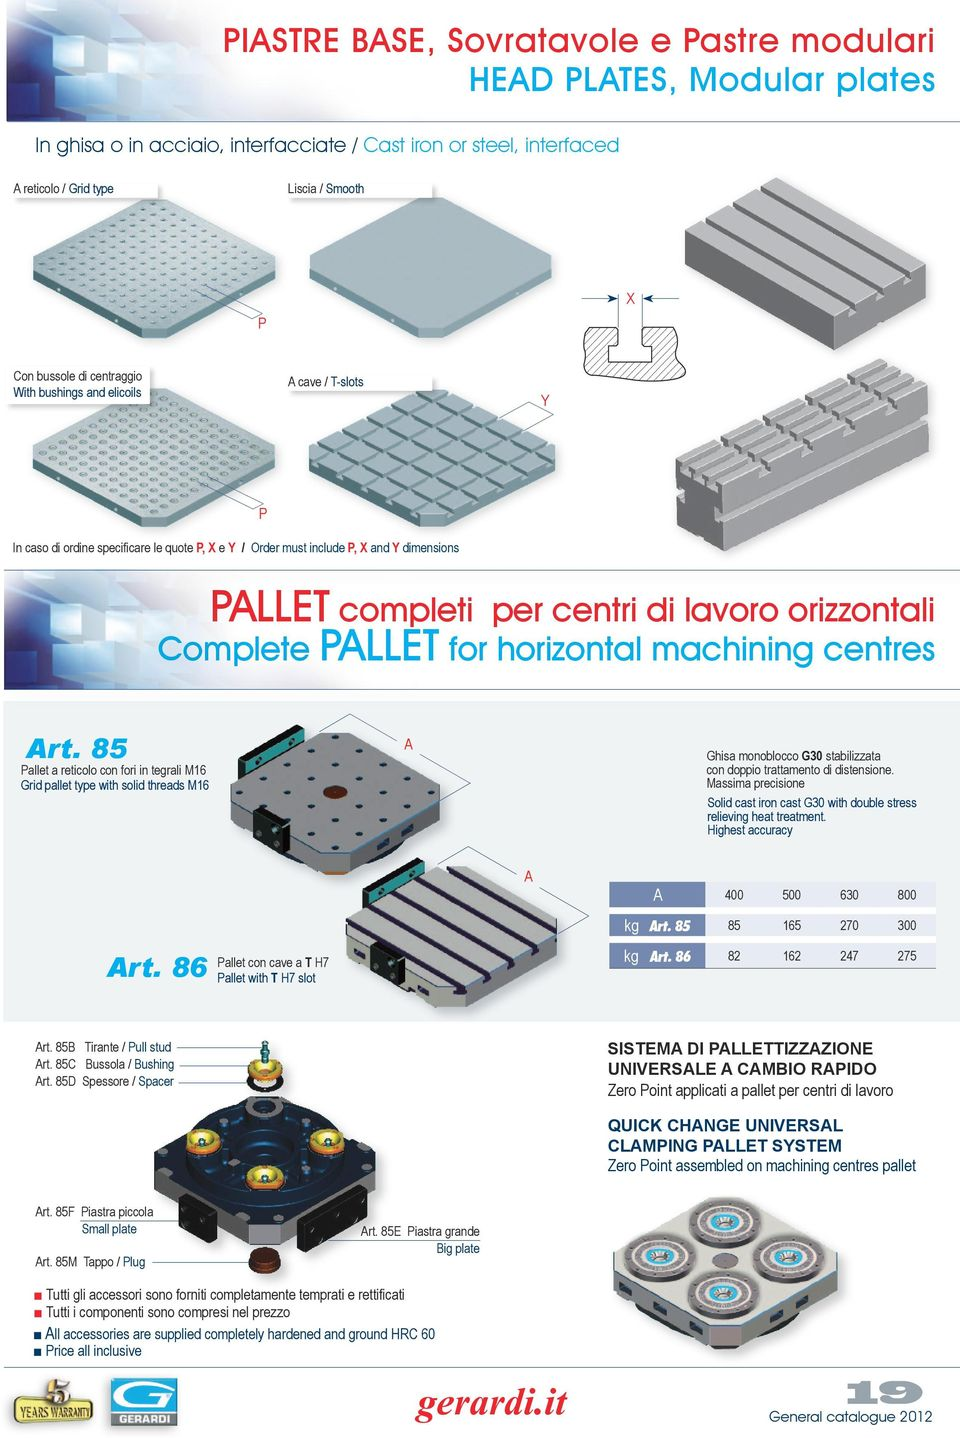 for horizontal machining centres rt. 85 Pallet a reticolo con fori in tegrali M16 Grid pallet type with solid threads M16 Ghisa monoblocco G30 stabilizzata con doppio trattamento di distensione.